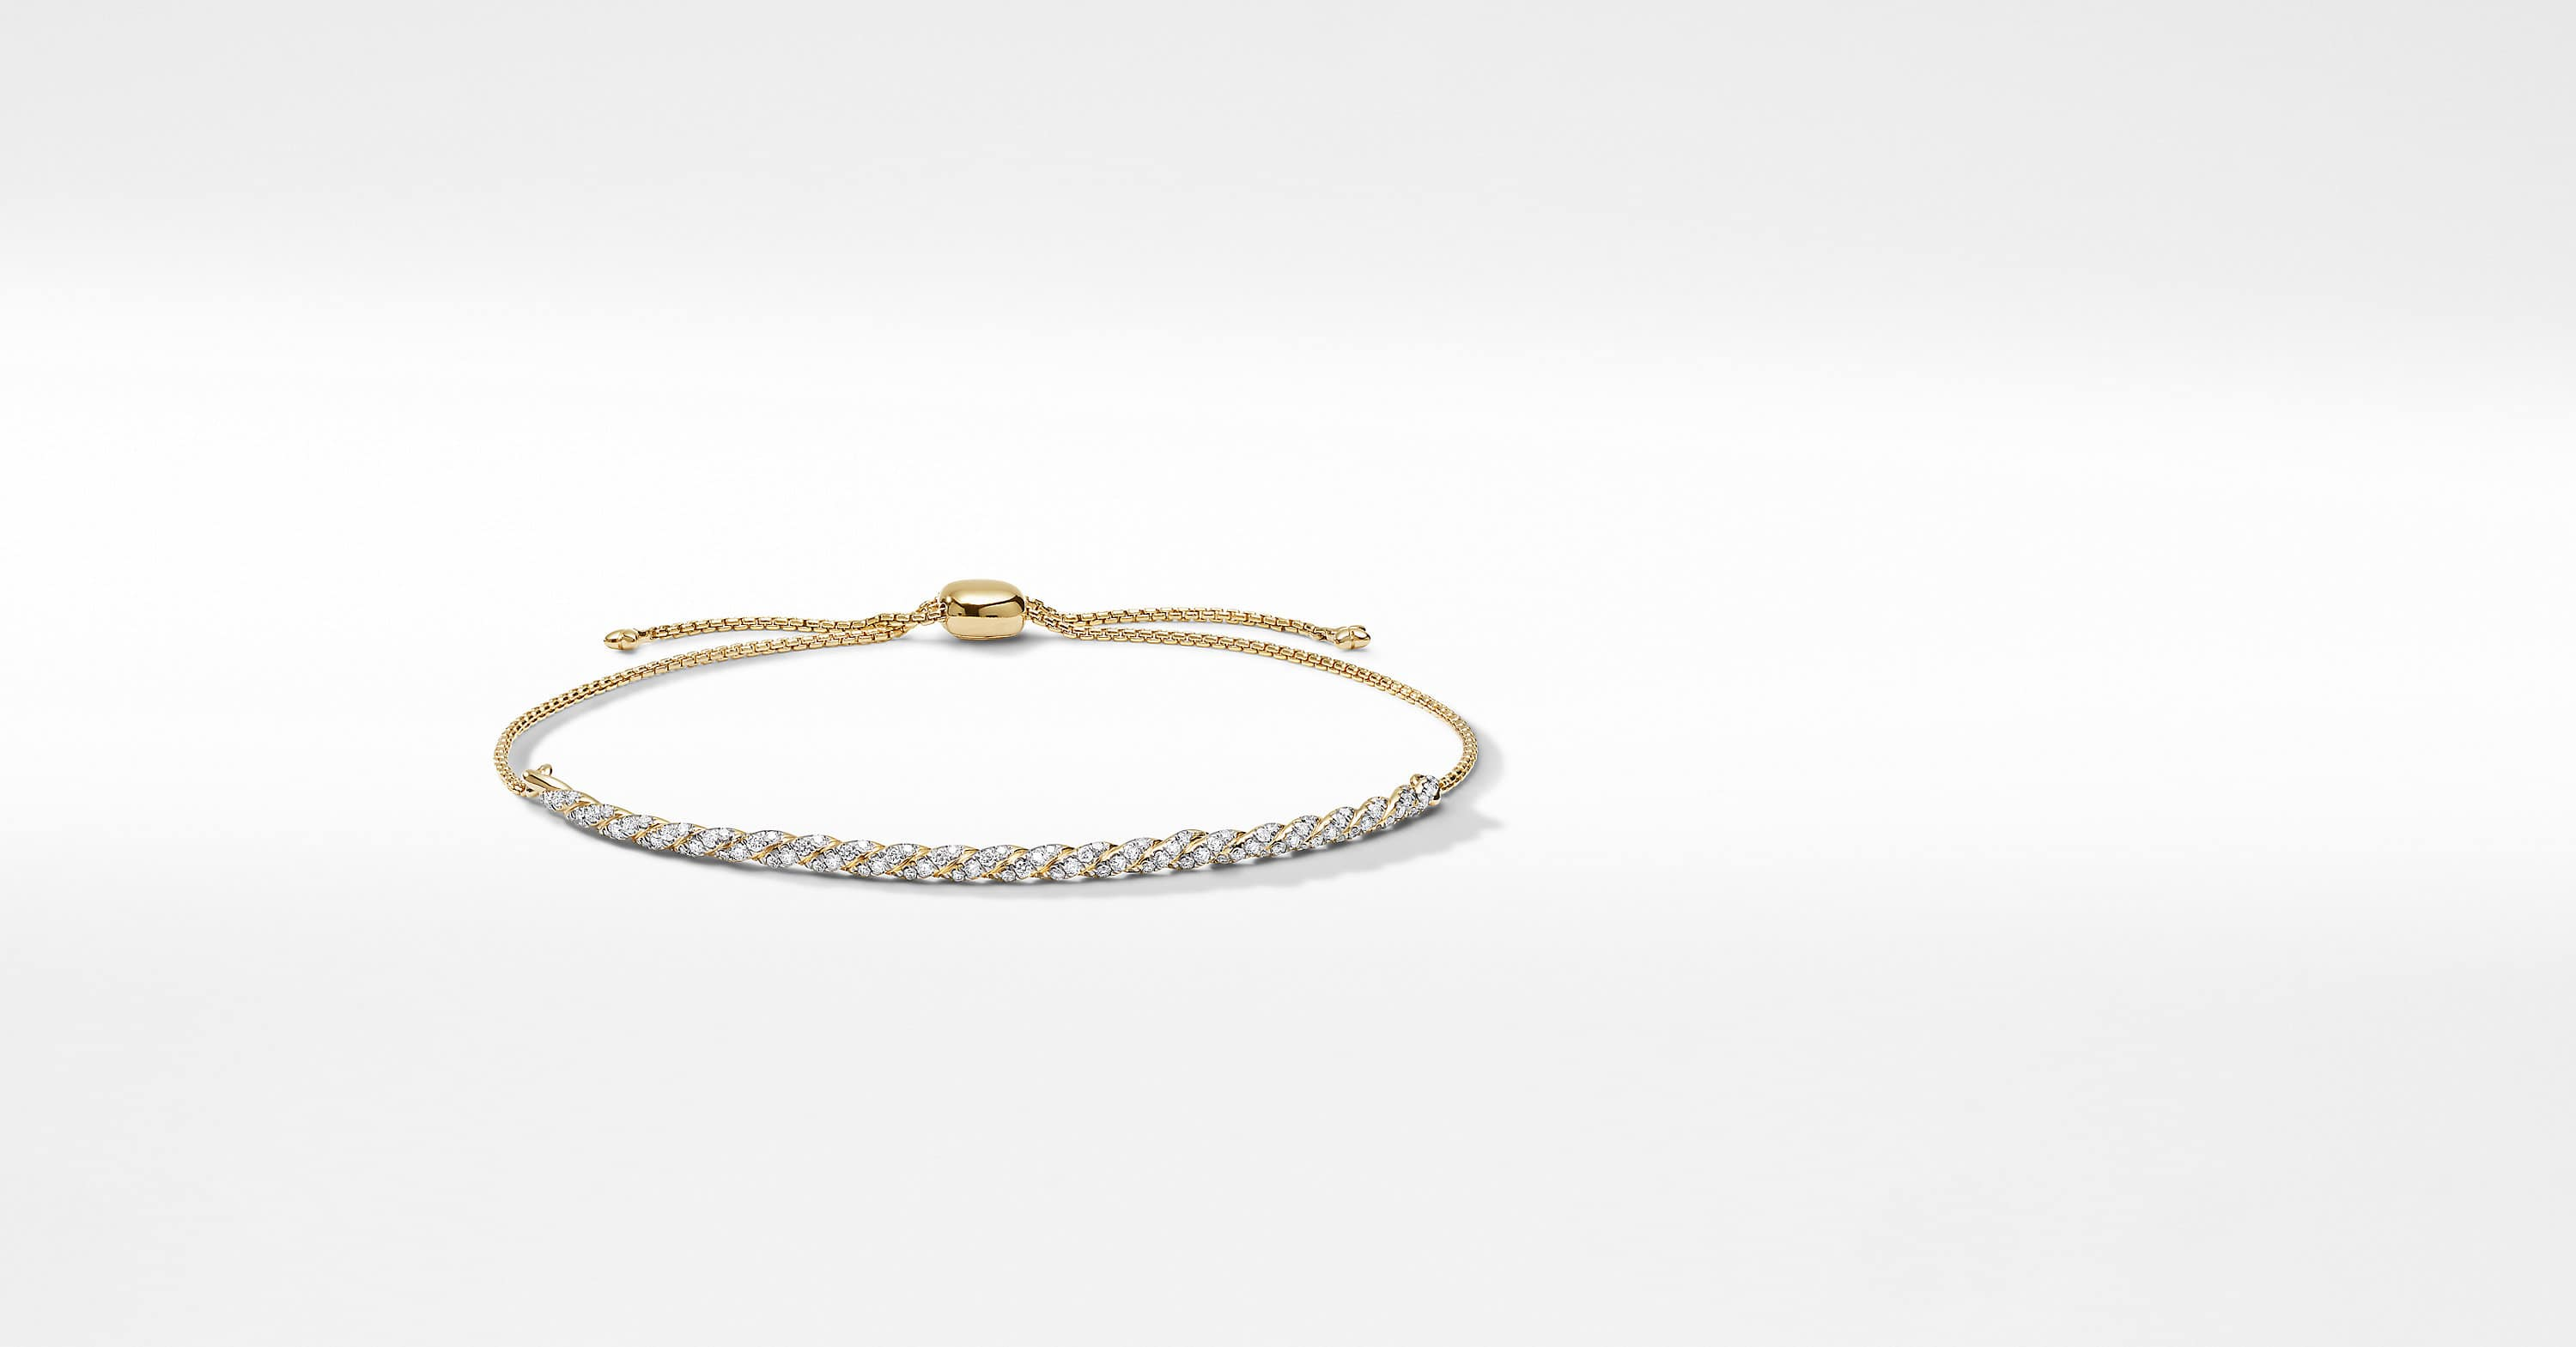 Flexible Slider Bracelet in 18K Yellow Gold with Pavé